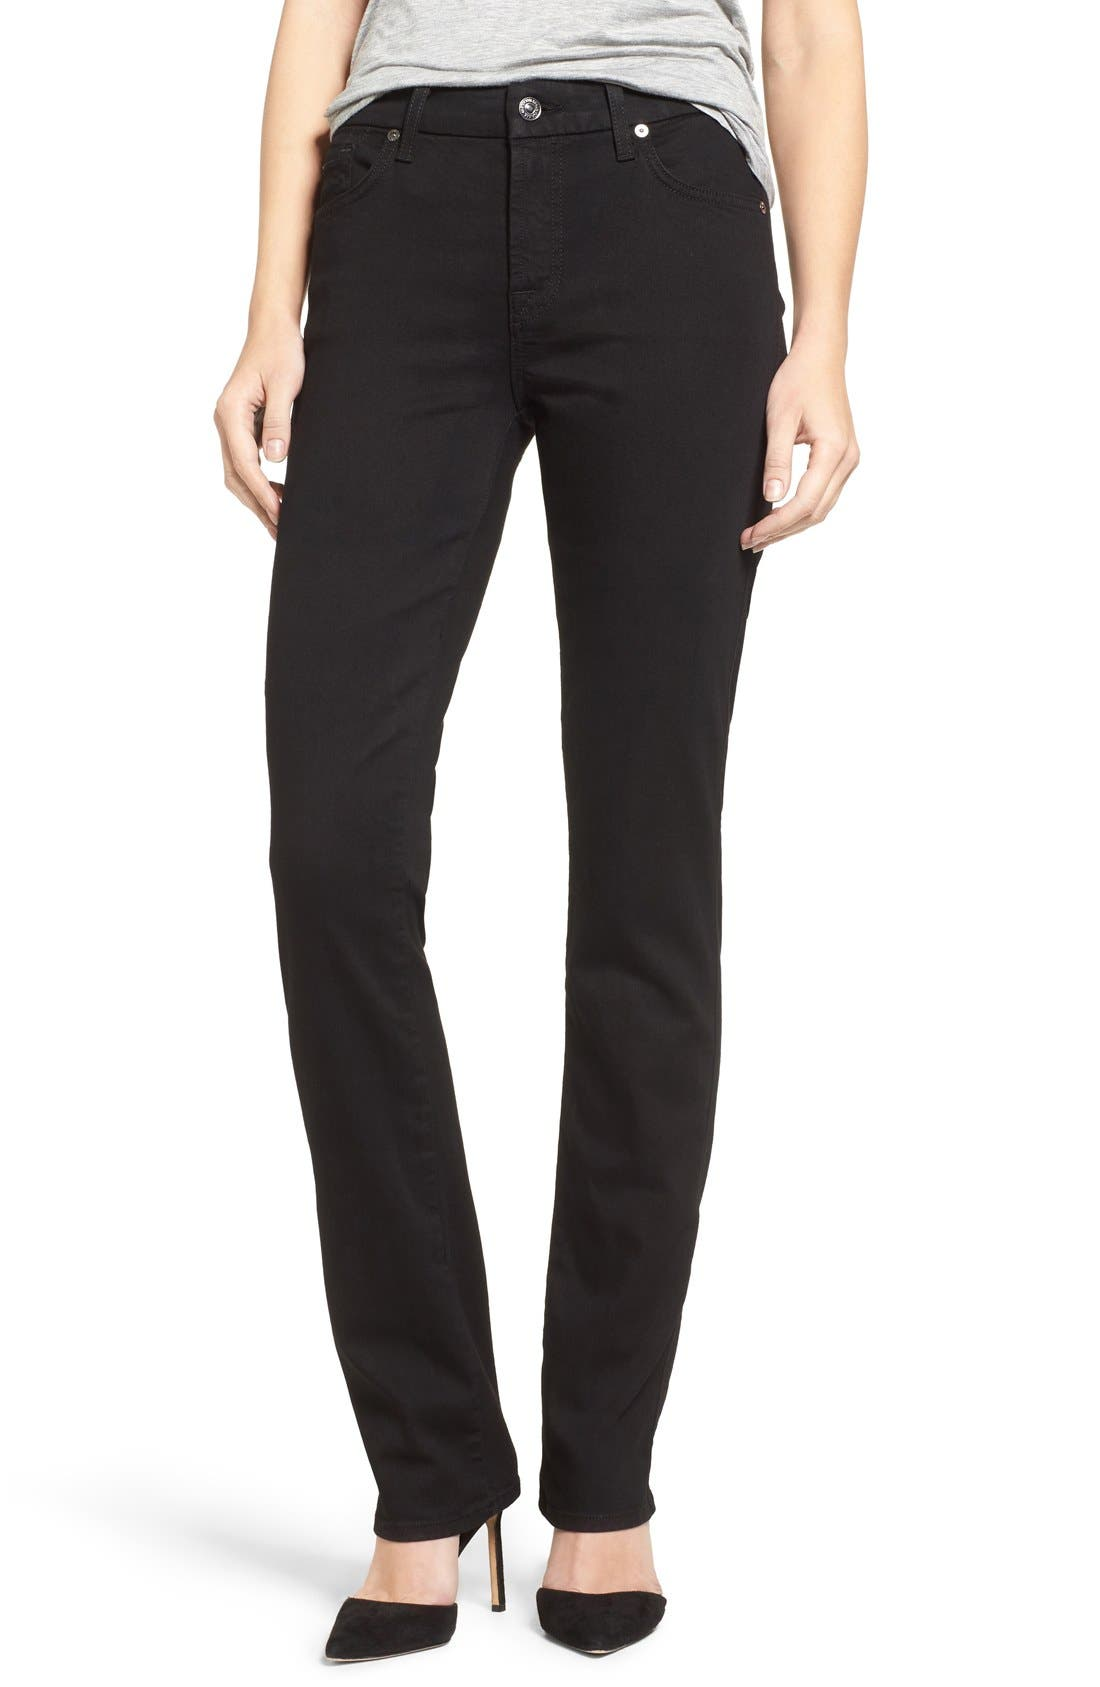 Main Image - 7 For All Mankind® 'b(air) - Kimmie' Straight Leg Jeans (Bair Black)